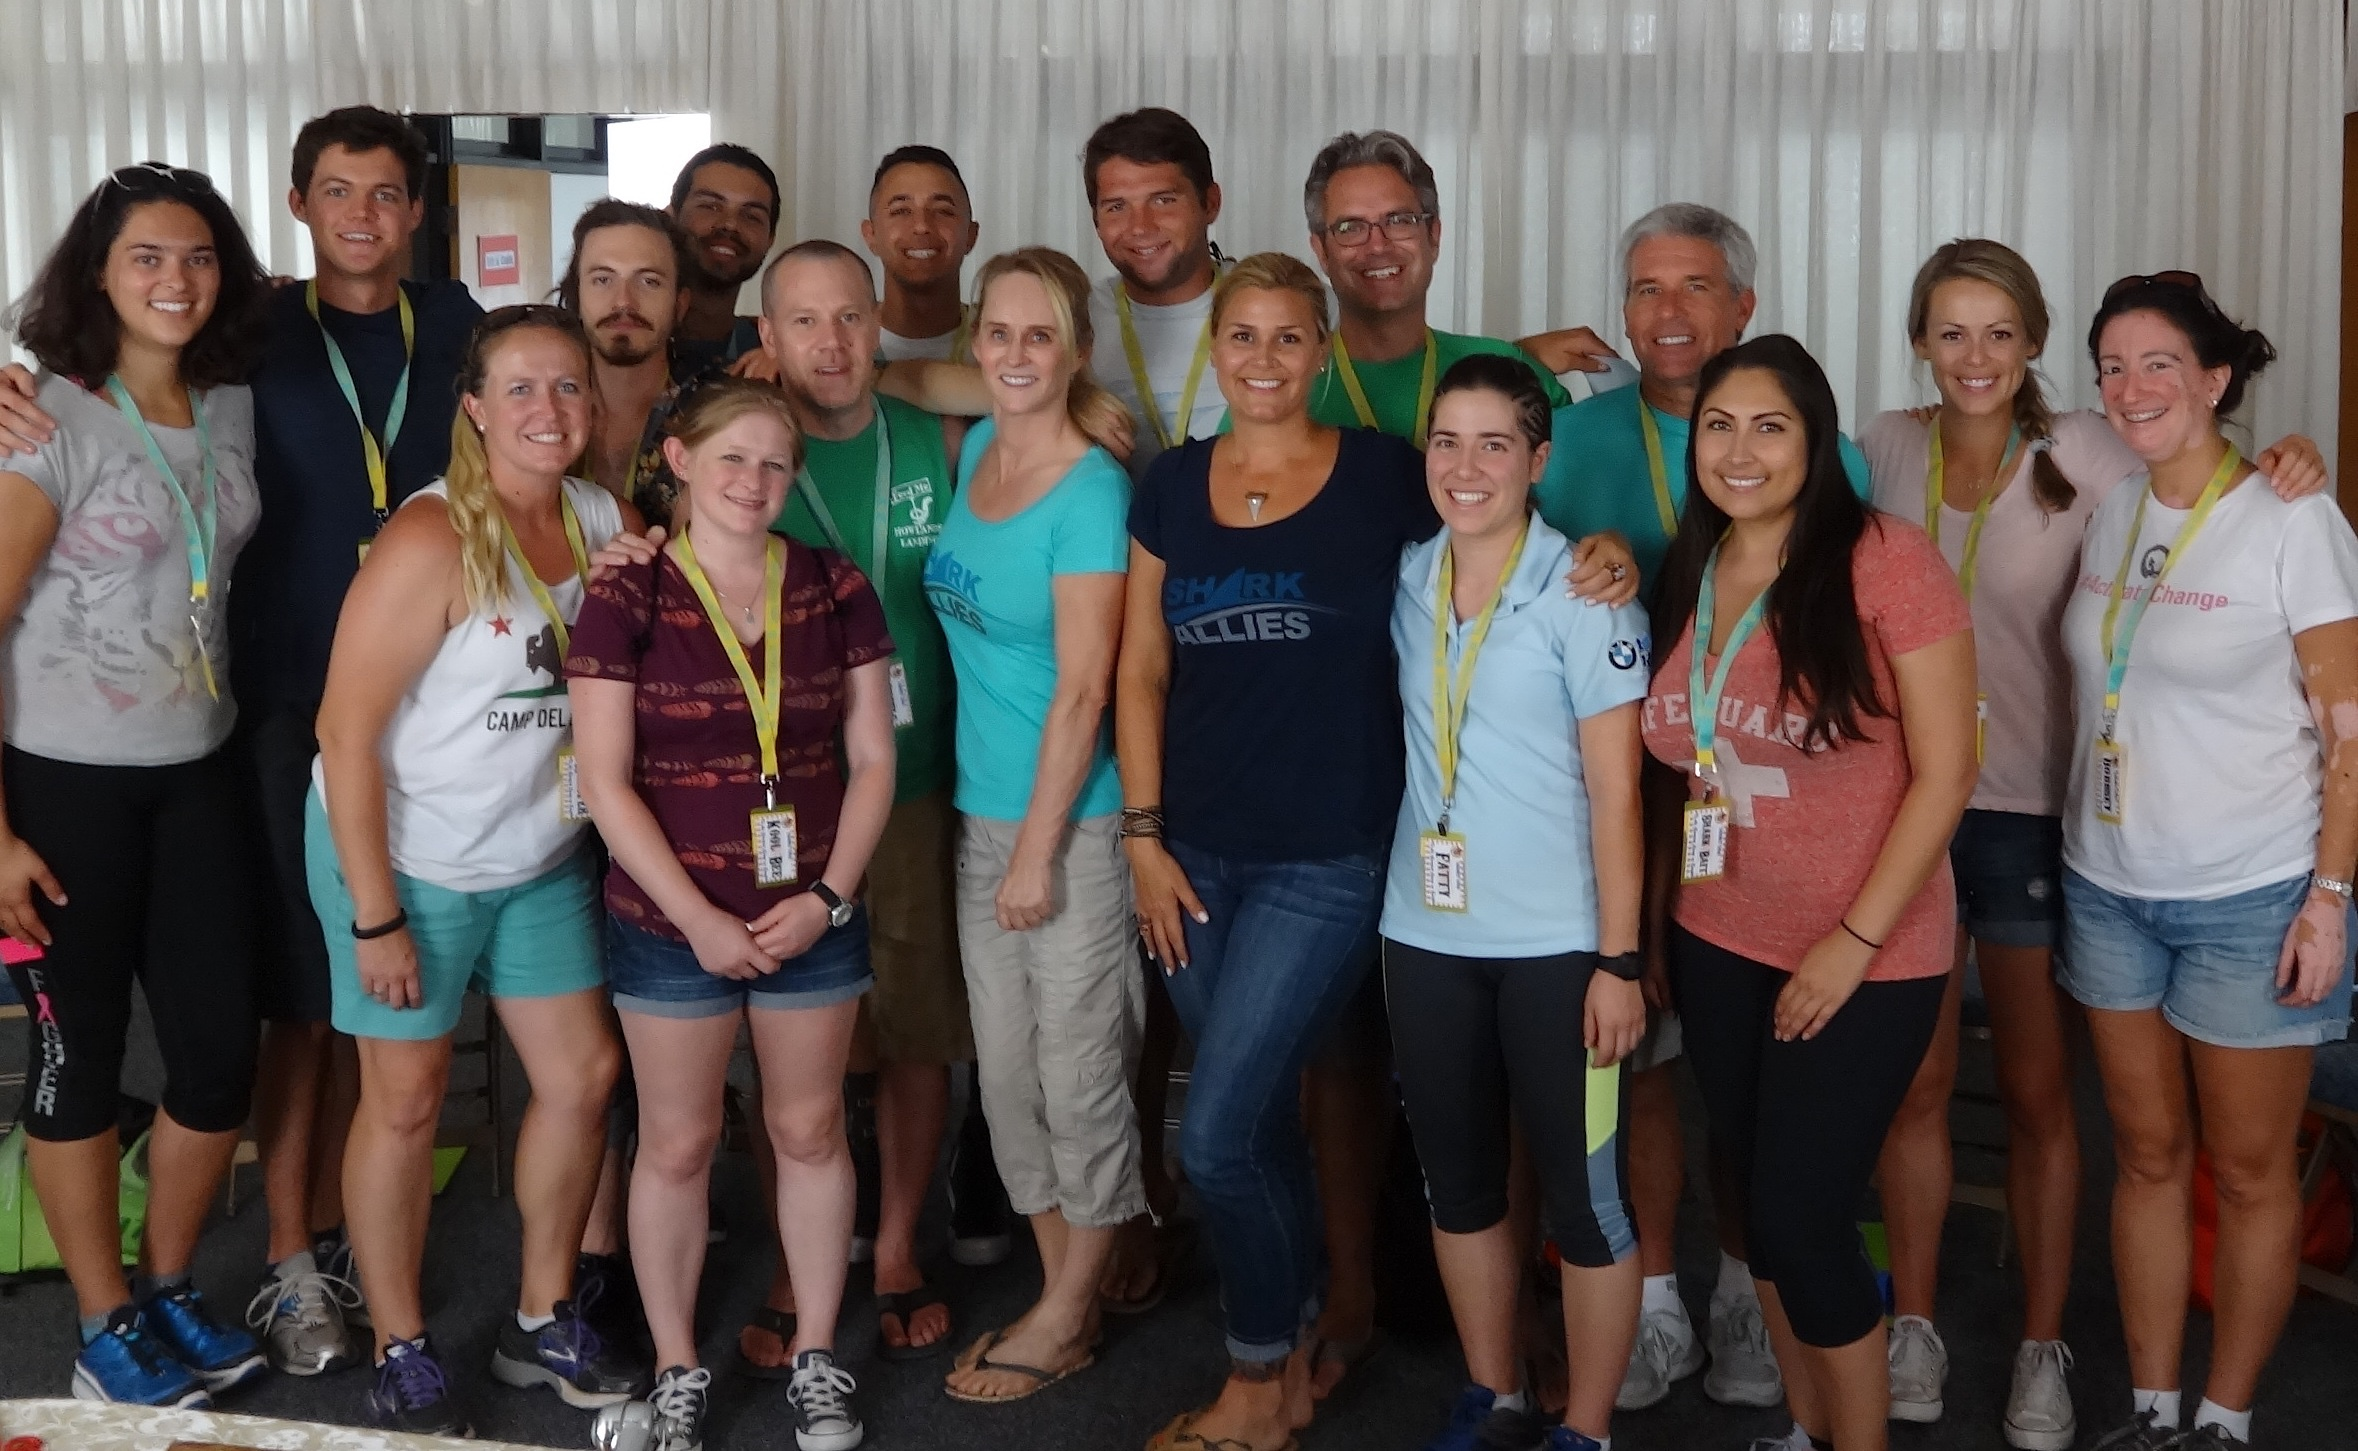 The team members and teachers of Camp del Corazon welcomed Stefanie and Erika